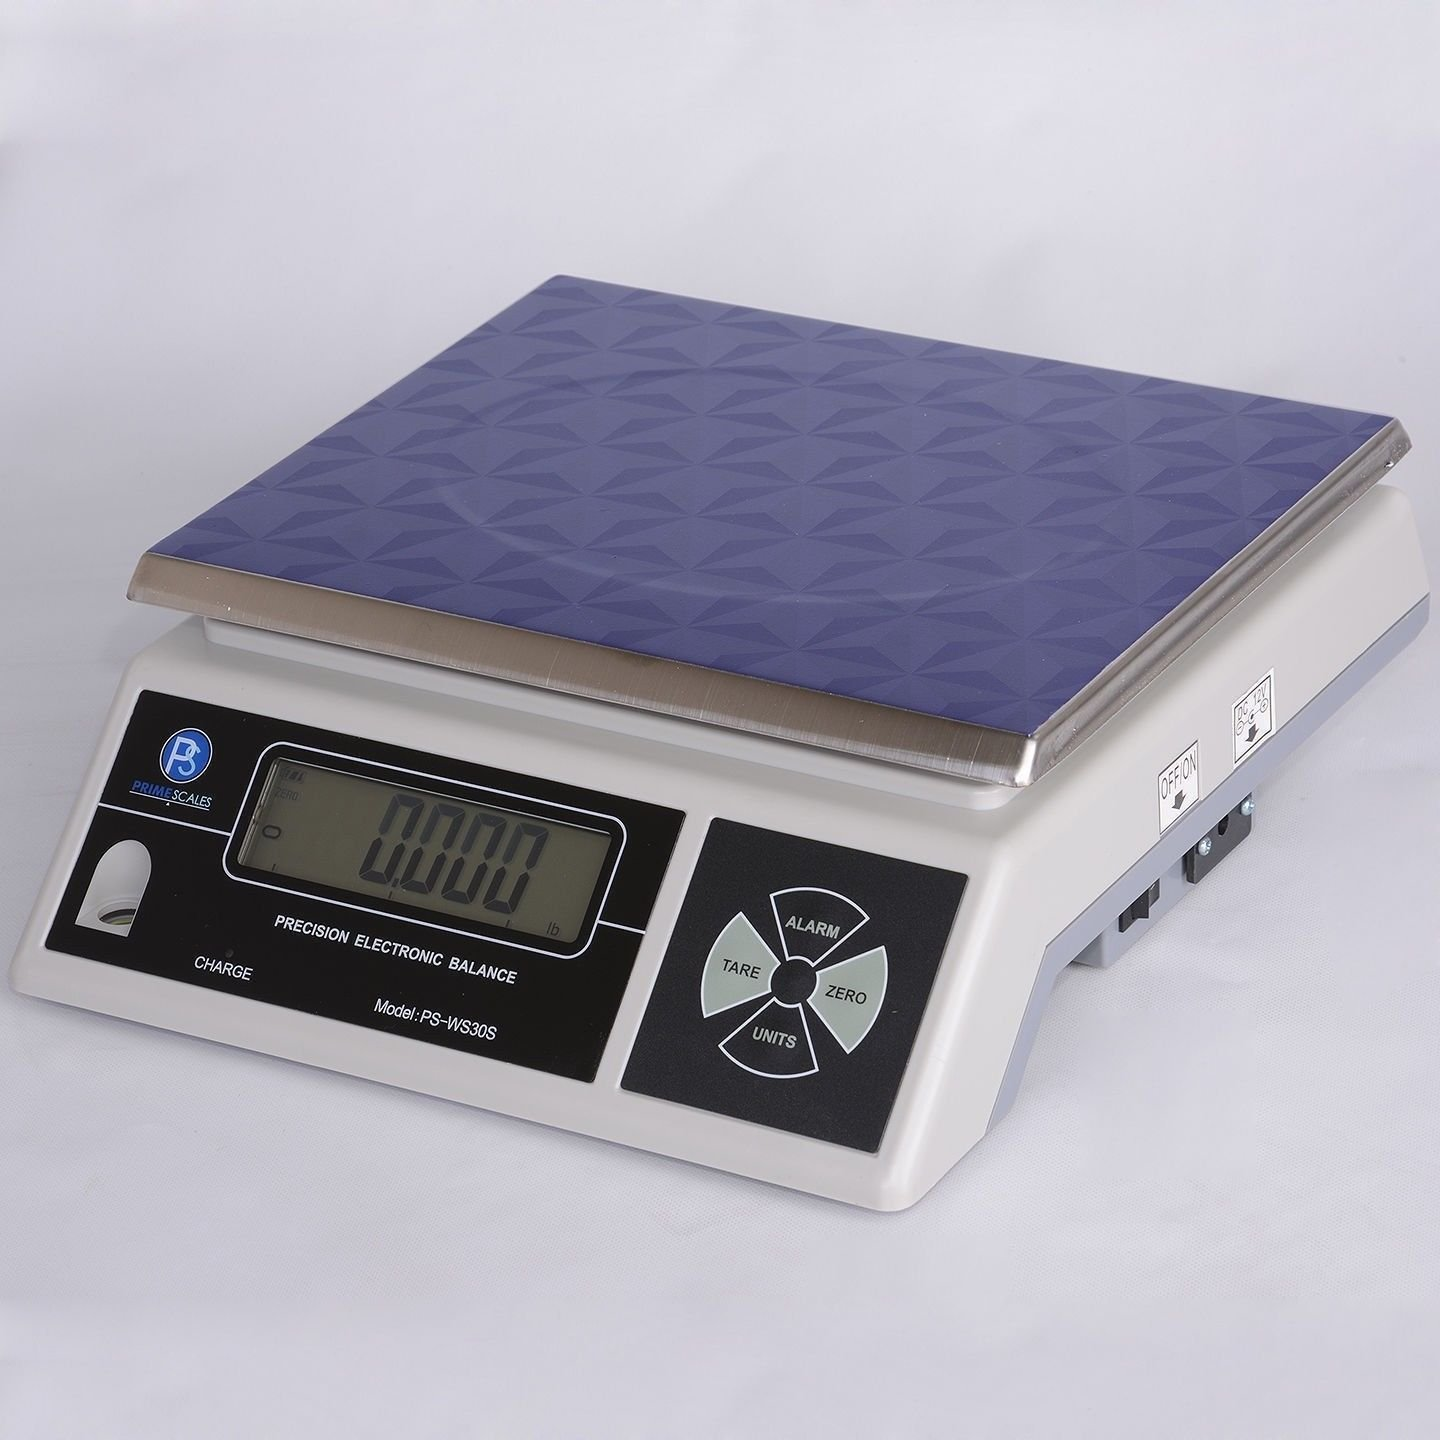 Selleton Ps-Ws30Ks Max 80% OFF Weighing Scale Max 70% OFF Balance Lb 13.3 Lab 0.0005 X